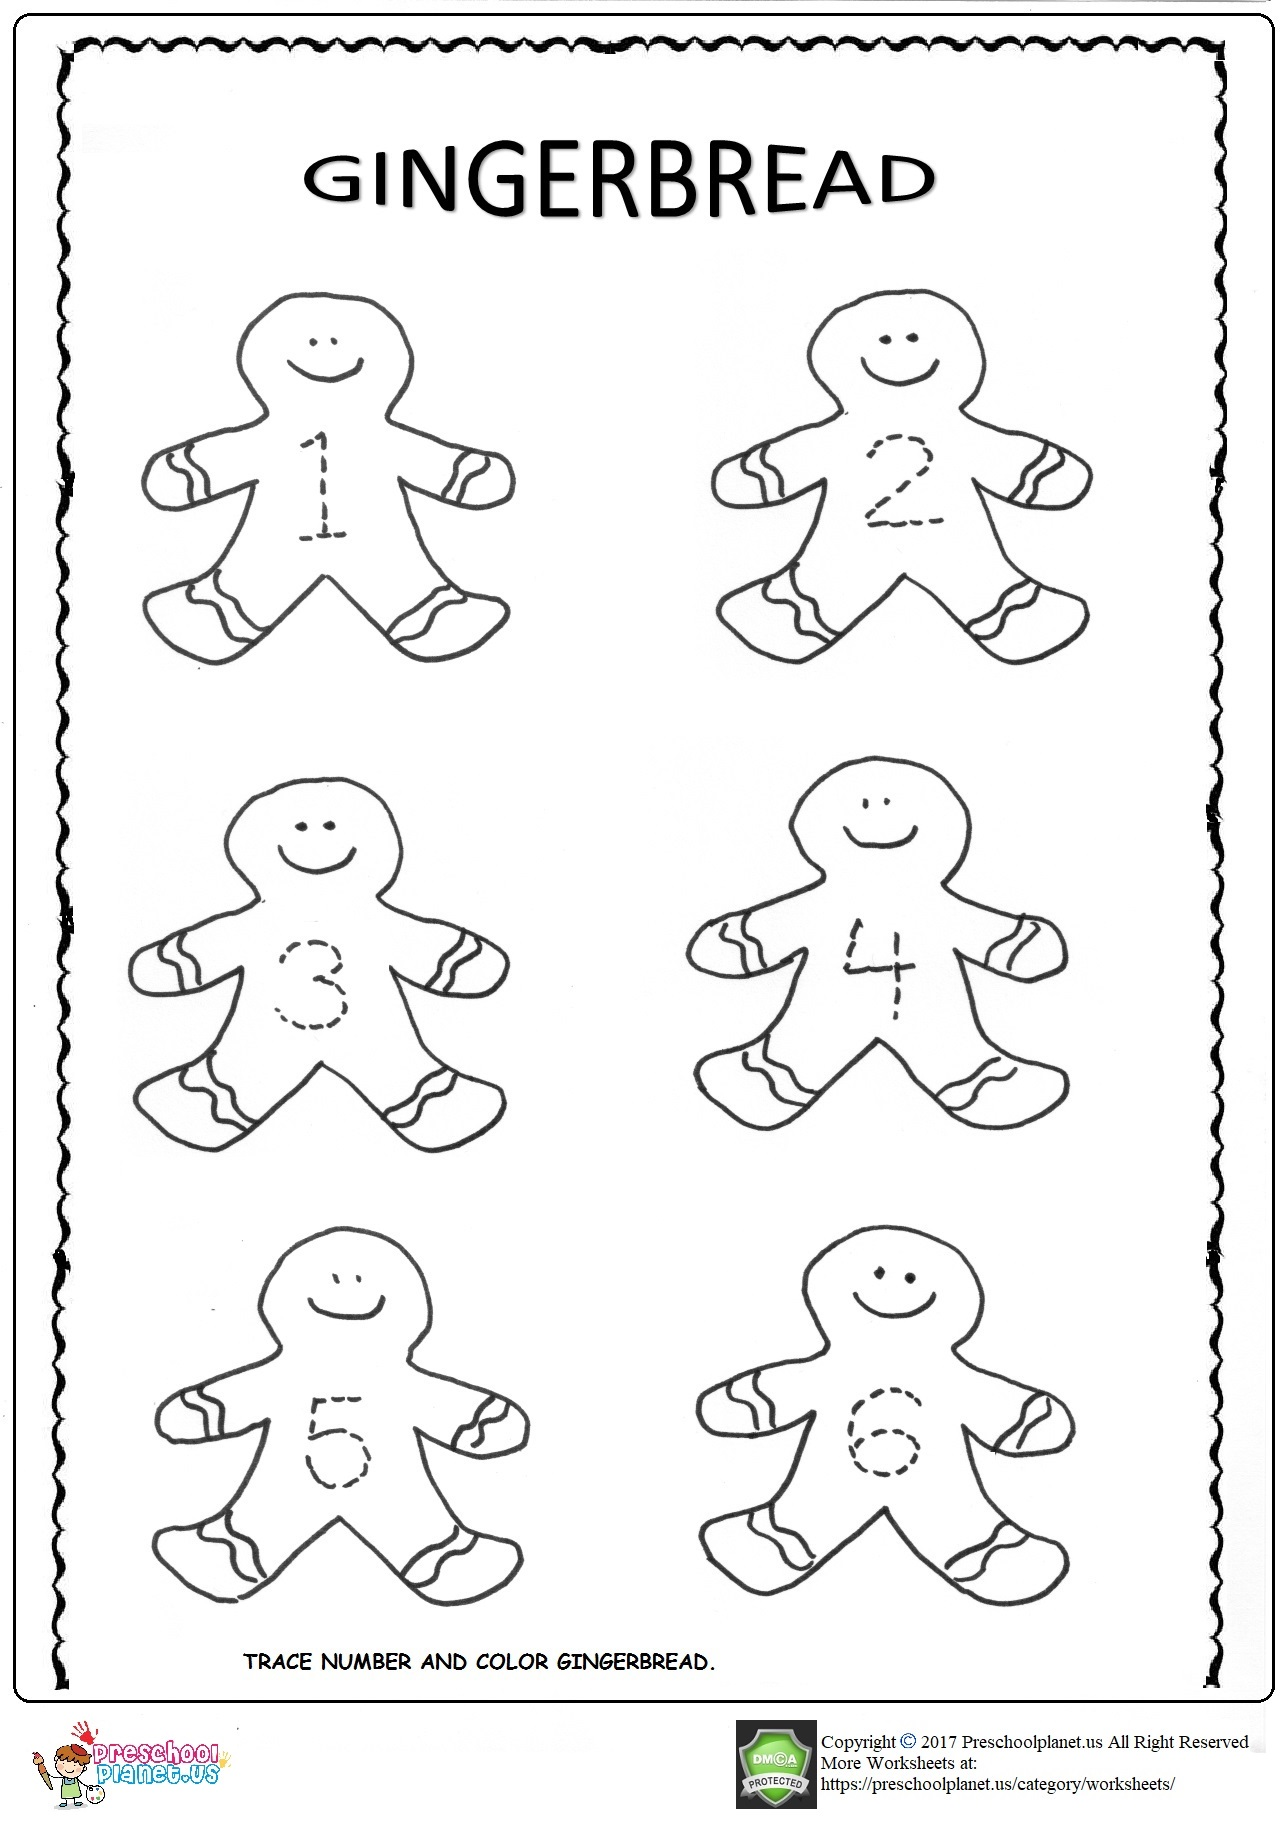 trace-gingerbread-worksheet-for-preschool